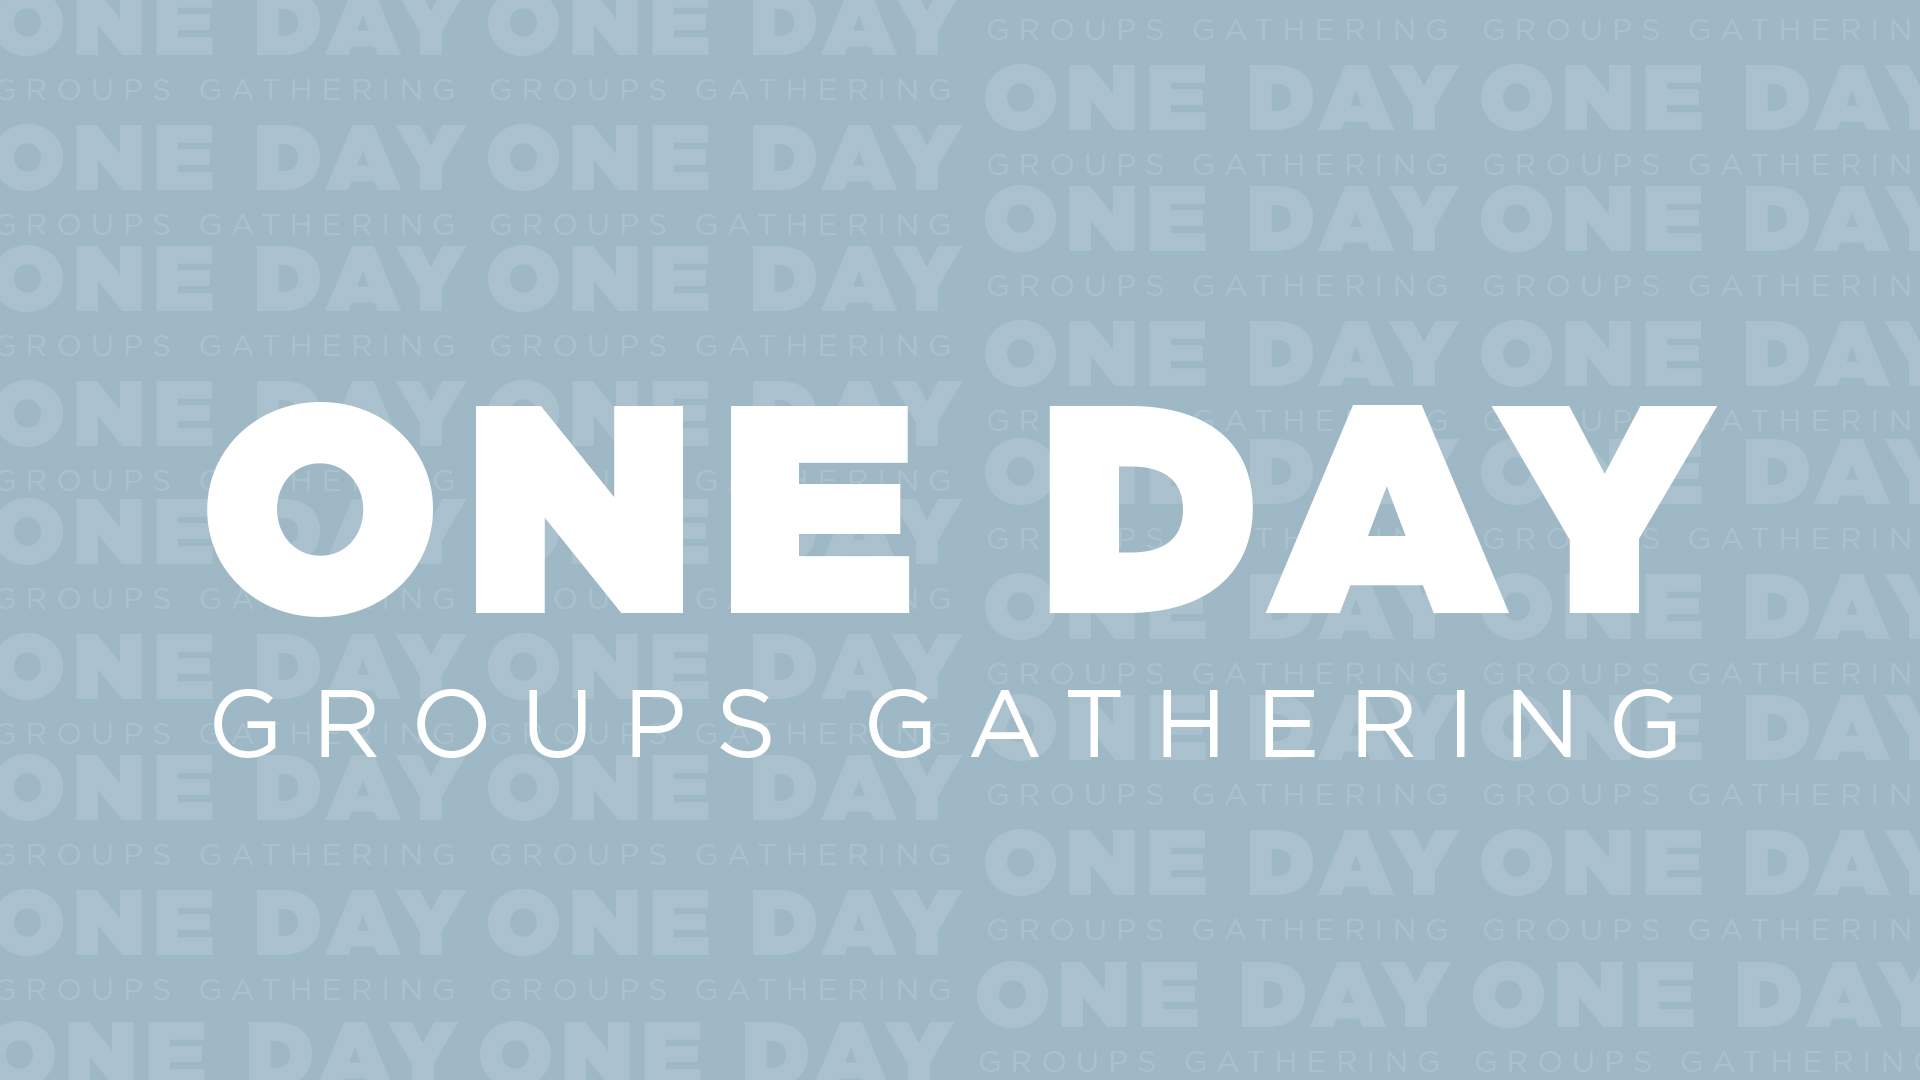 One Day Groups Gathering